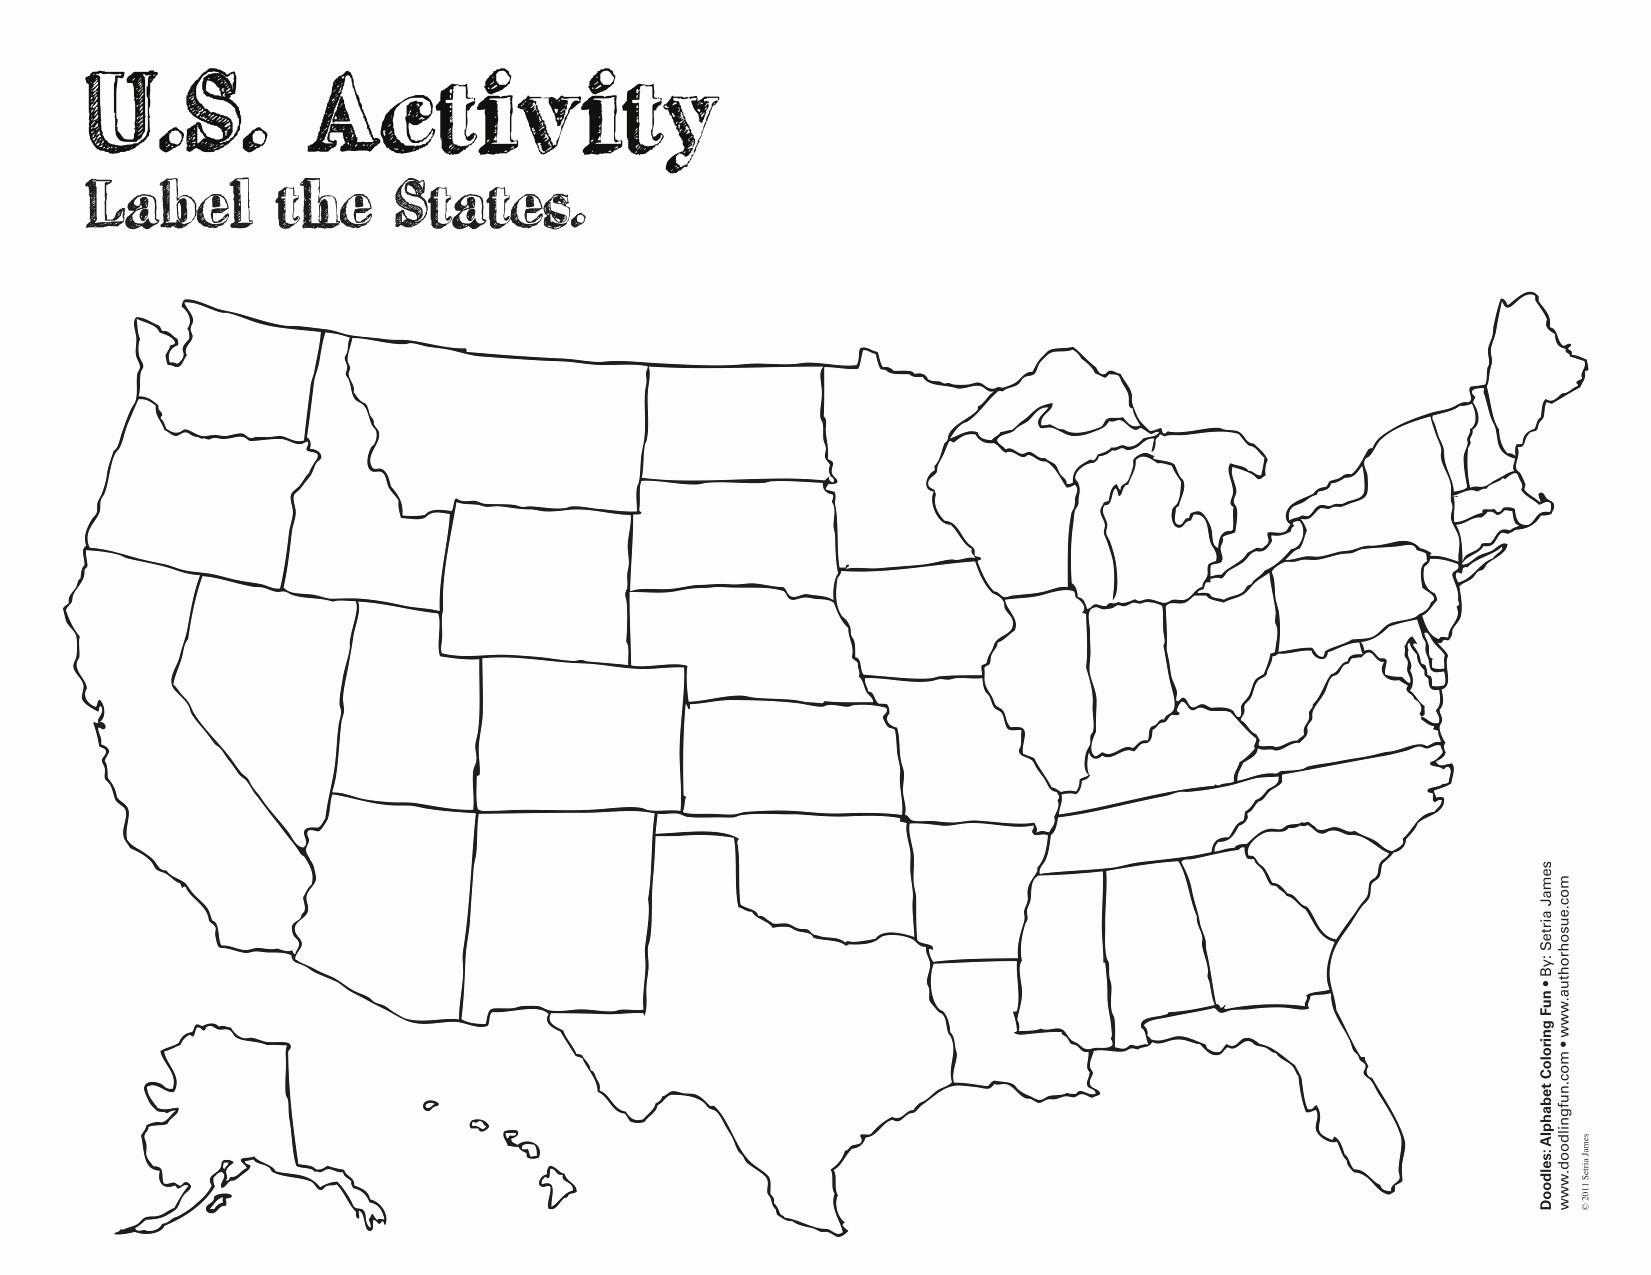 Us 50 State Map Practice Test Fill Blank Us Map Game Usmapblank - States And Capitals Map Quiz Printable